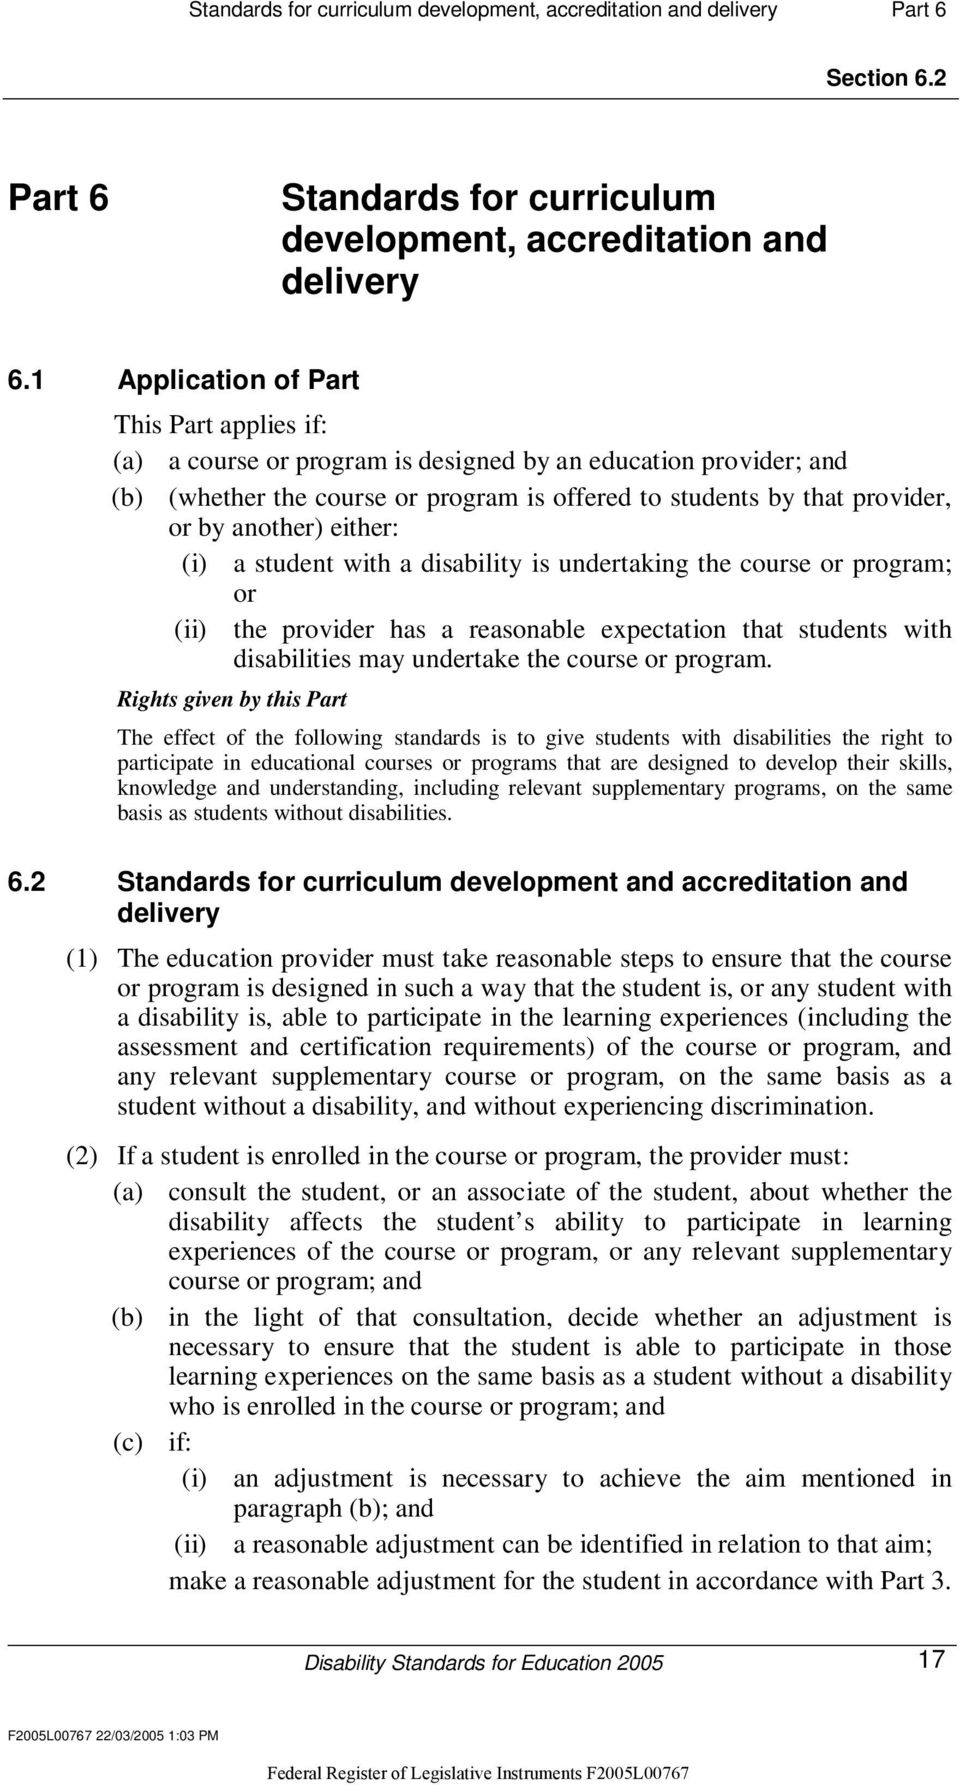 another) either: (i) a student with a disability is undertaking the course or program; or (ii) the provider has a reasonable expectation that students with disabilities may undertake the course or